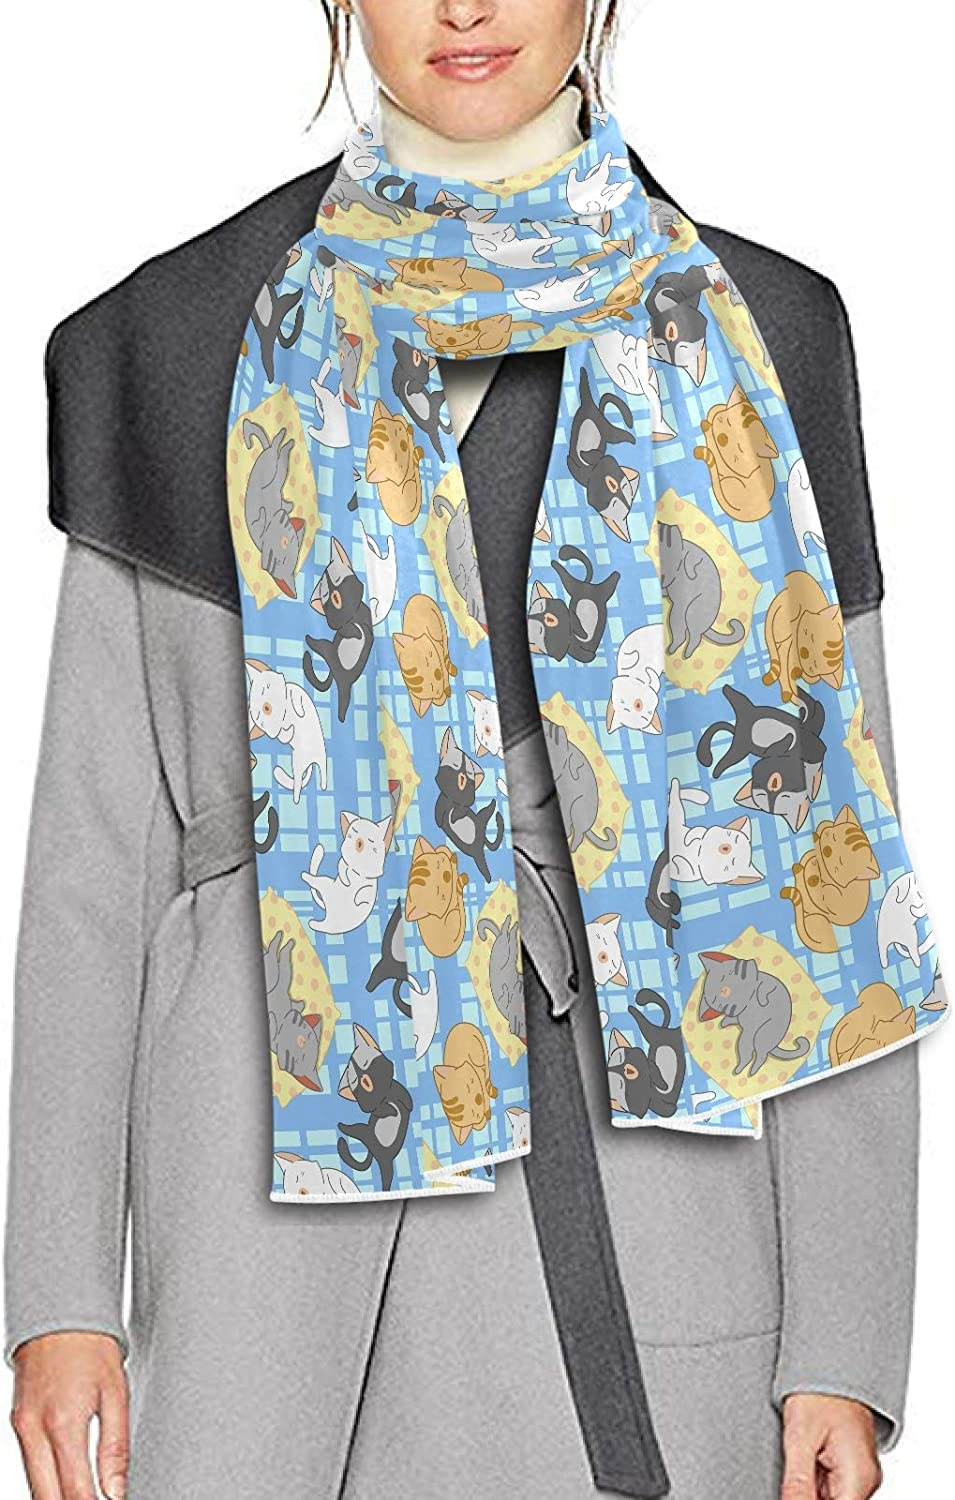 Scarf for Women and Men Cute Cats Sleeping Shawl Wraps Blanket Scarf Soft Winter Large Scarves Lightweight